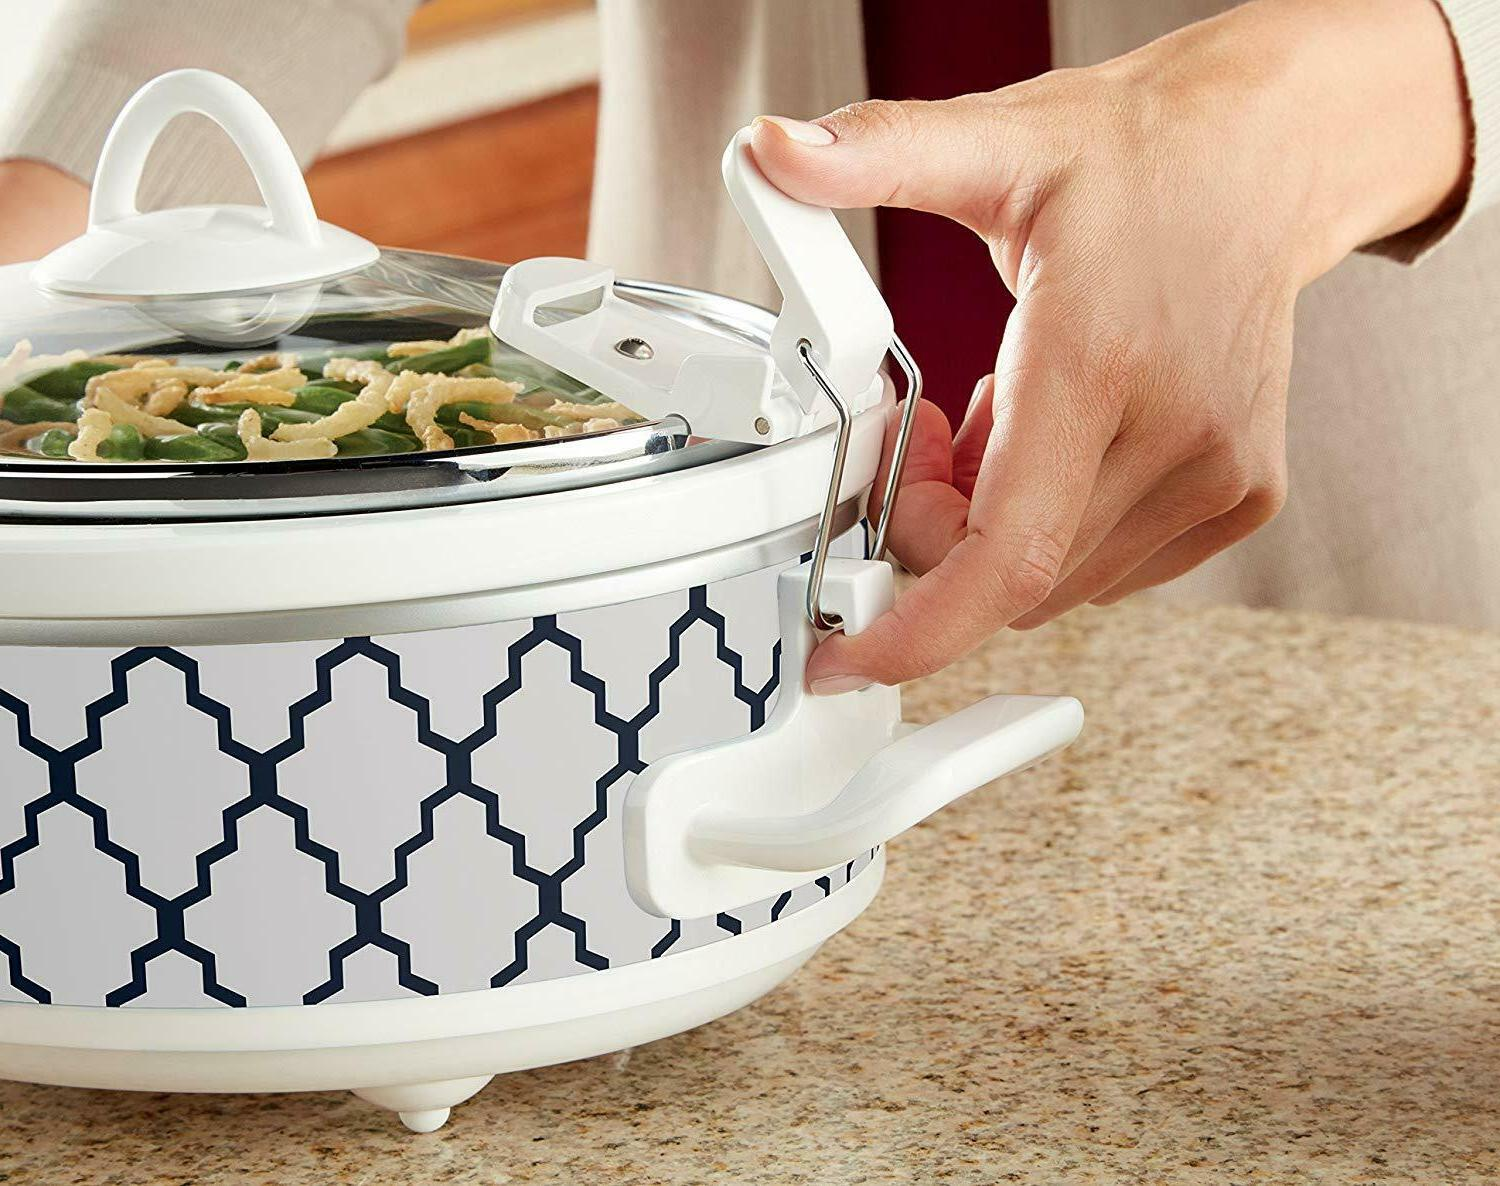 Crockpot 2.5-Quart Mini Crock